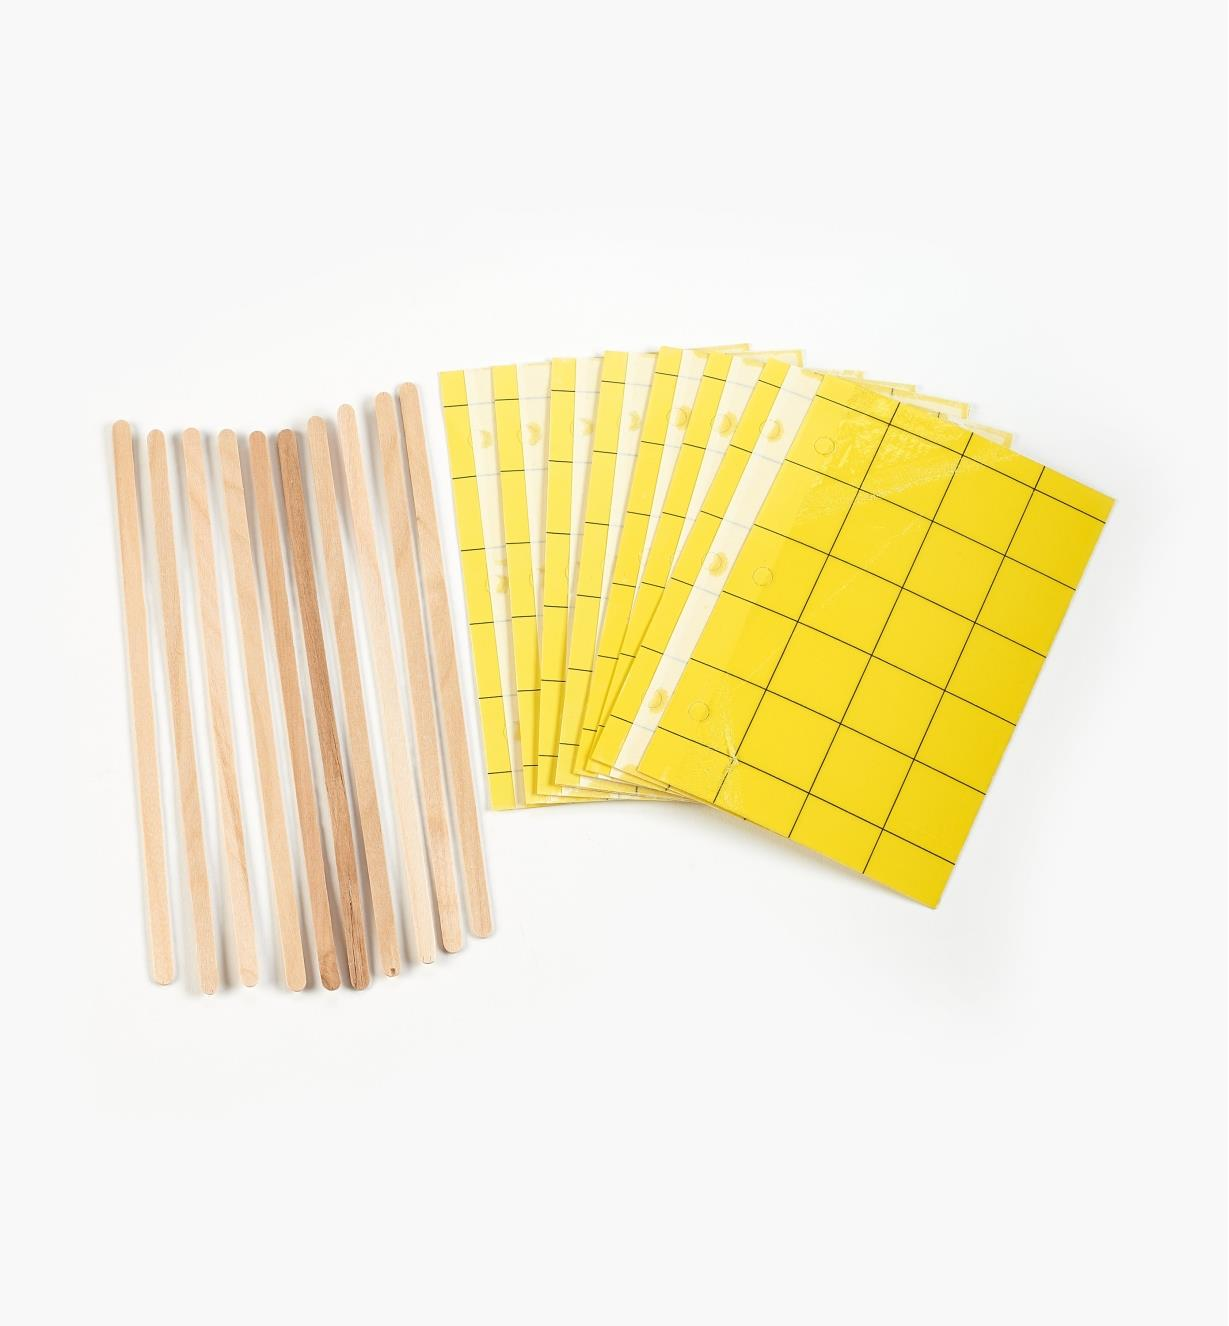 AB717 - Yellow Sticky Traps, pkg. of 10